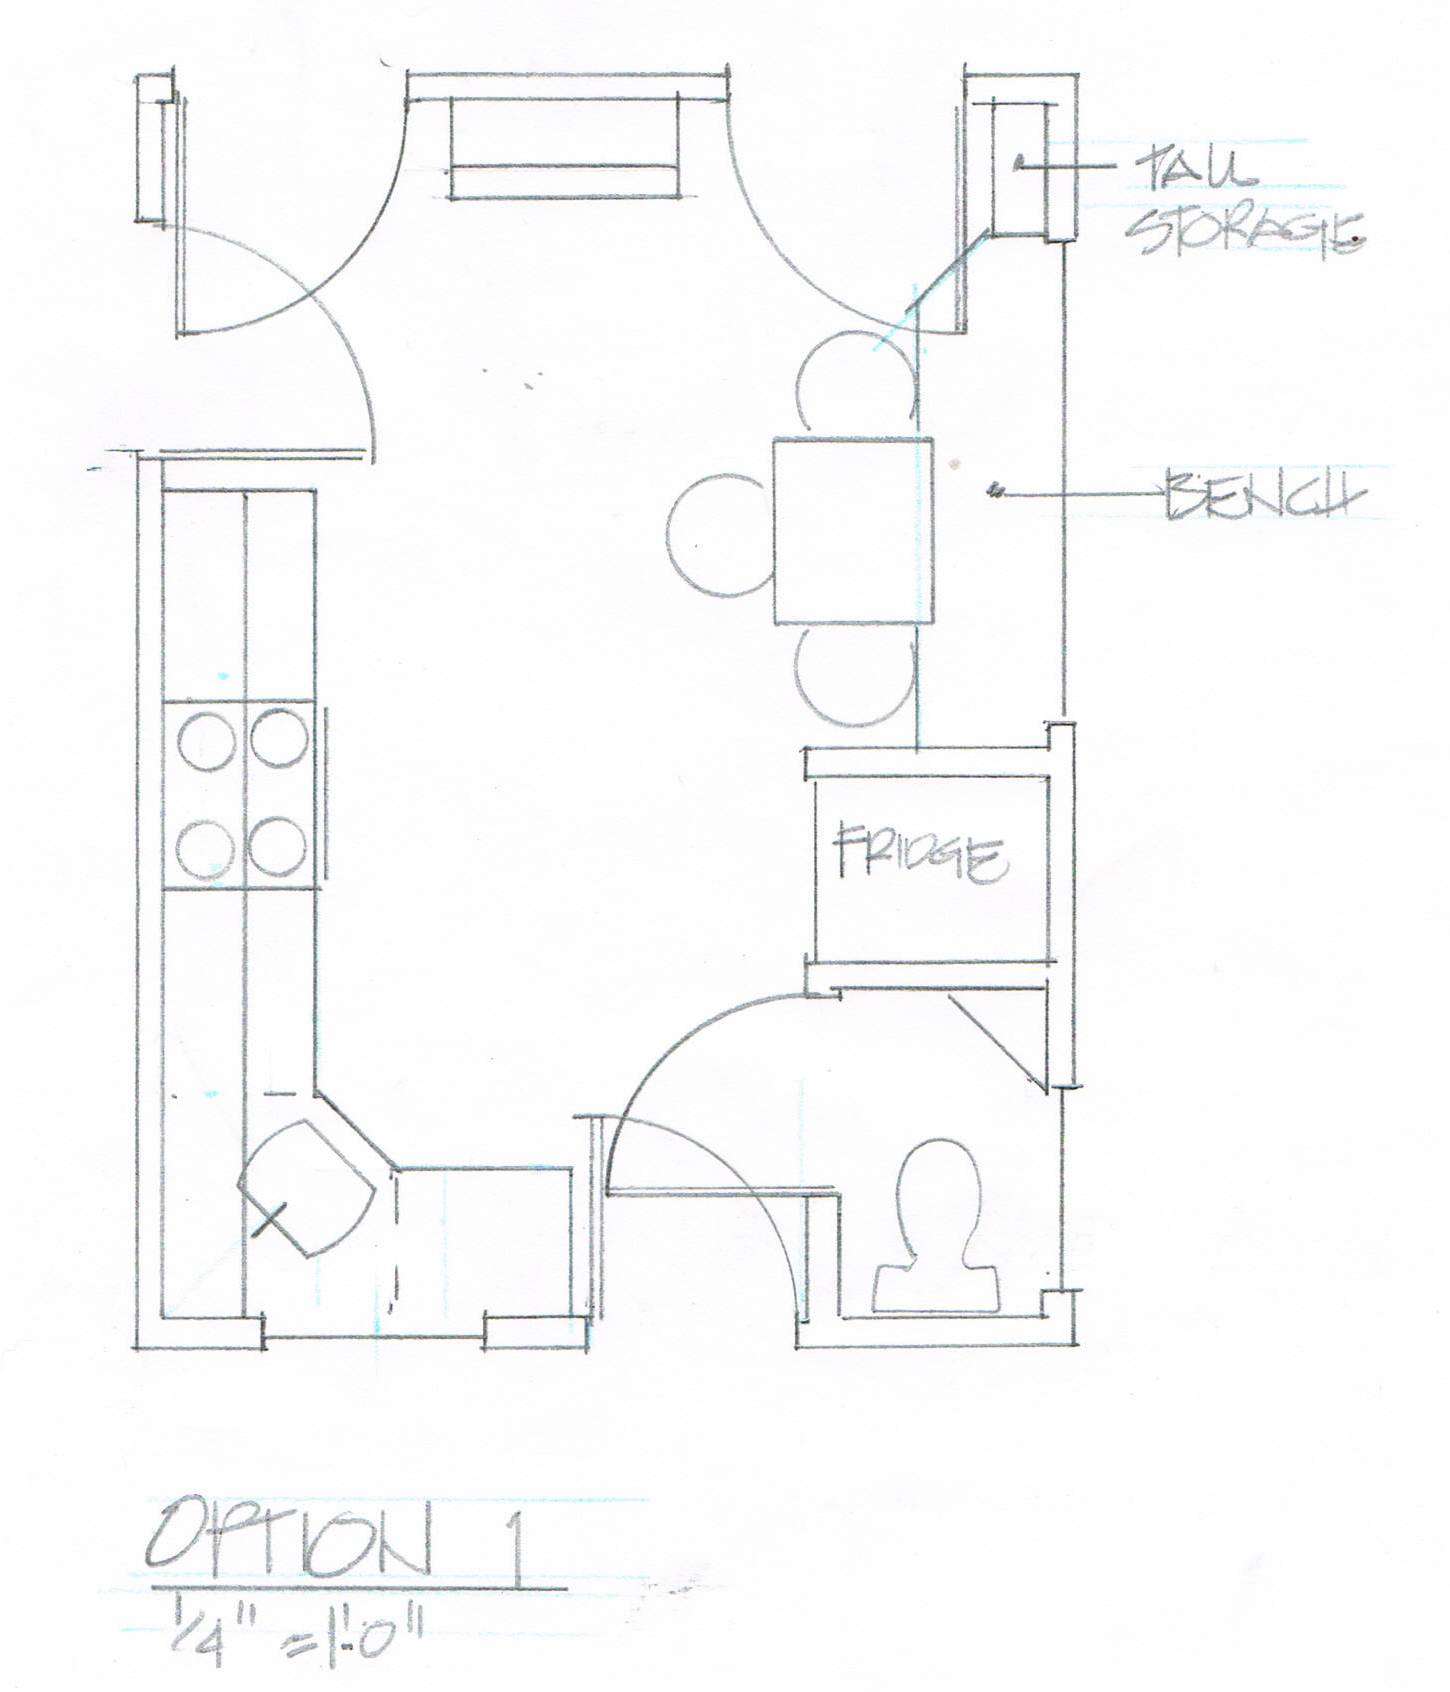 Autocad House Drawing at GetDrawings.com | Free for personal use ...